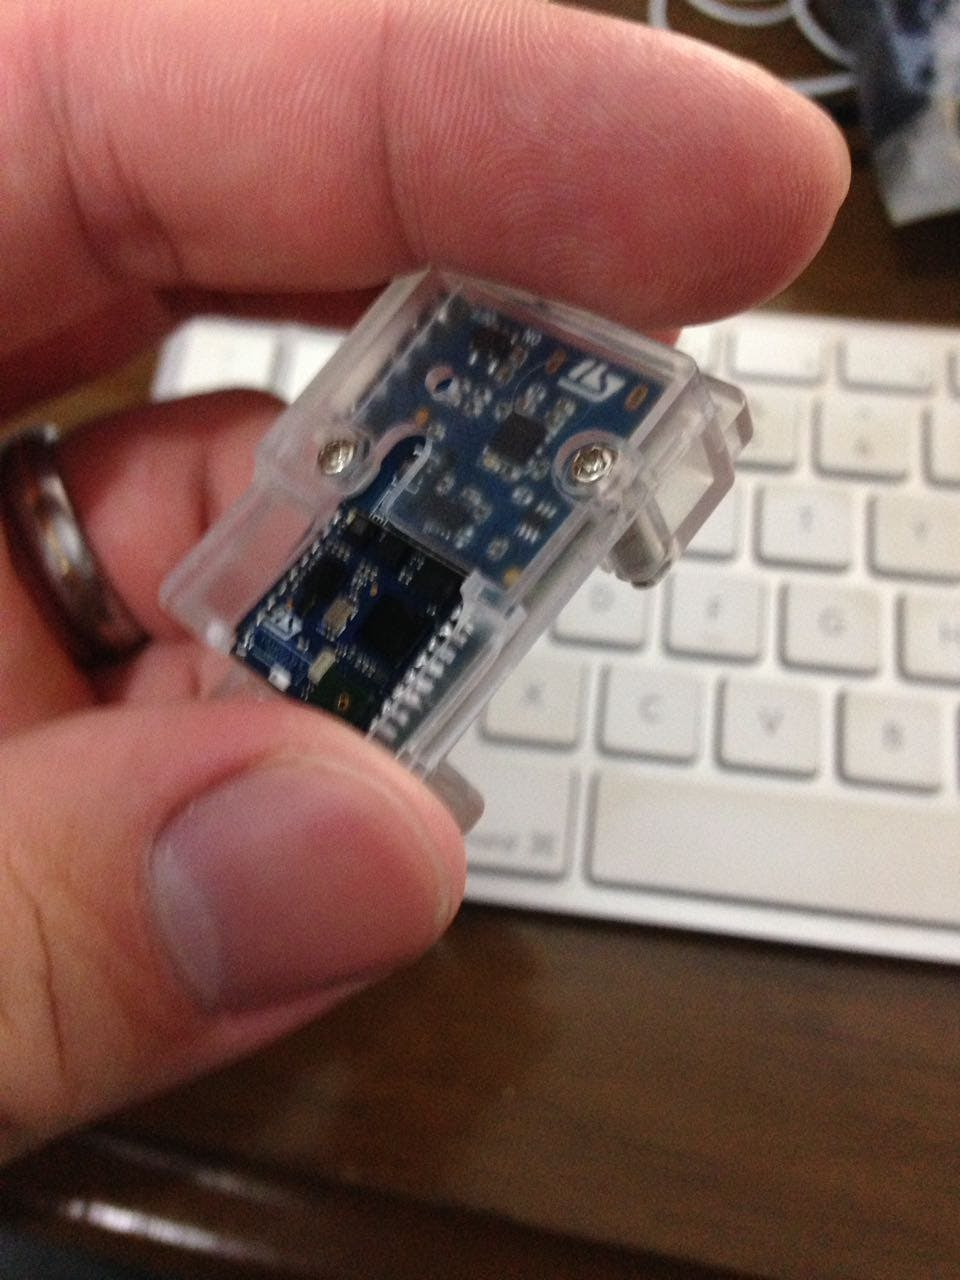 Full assembled sensor node, cute, isn't?